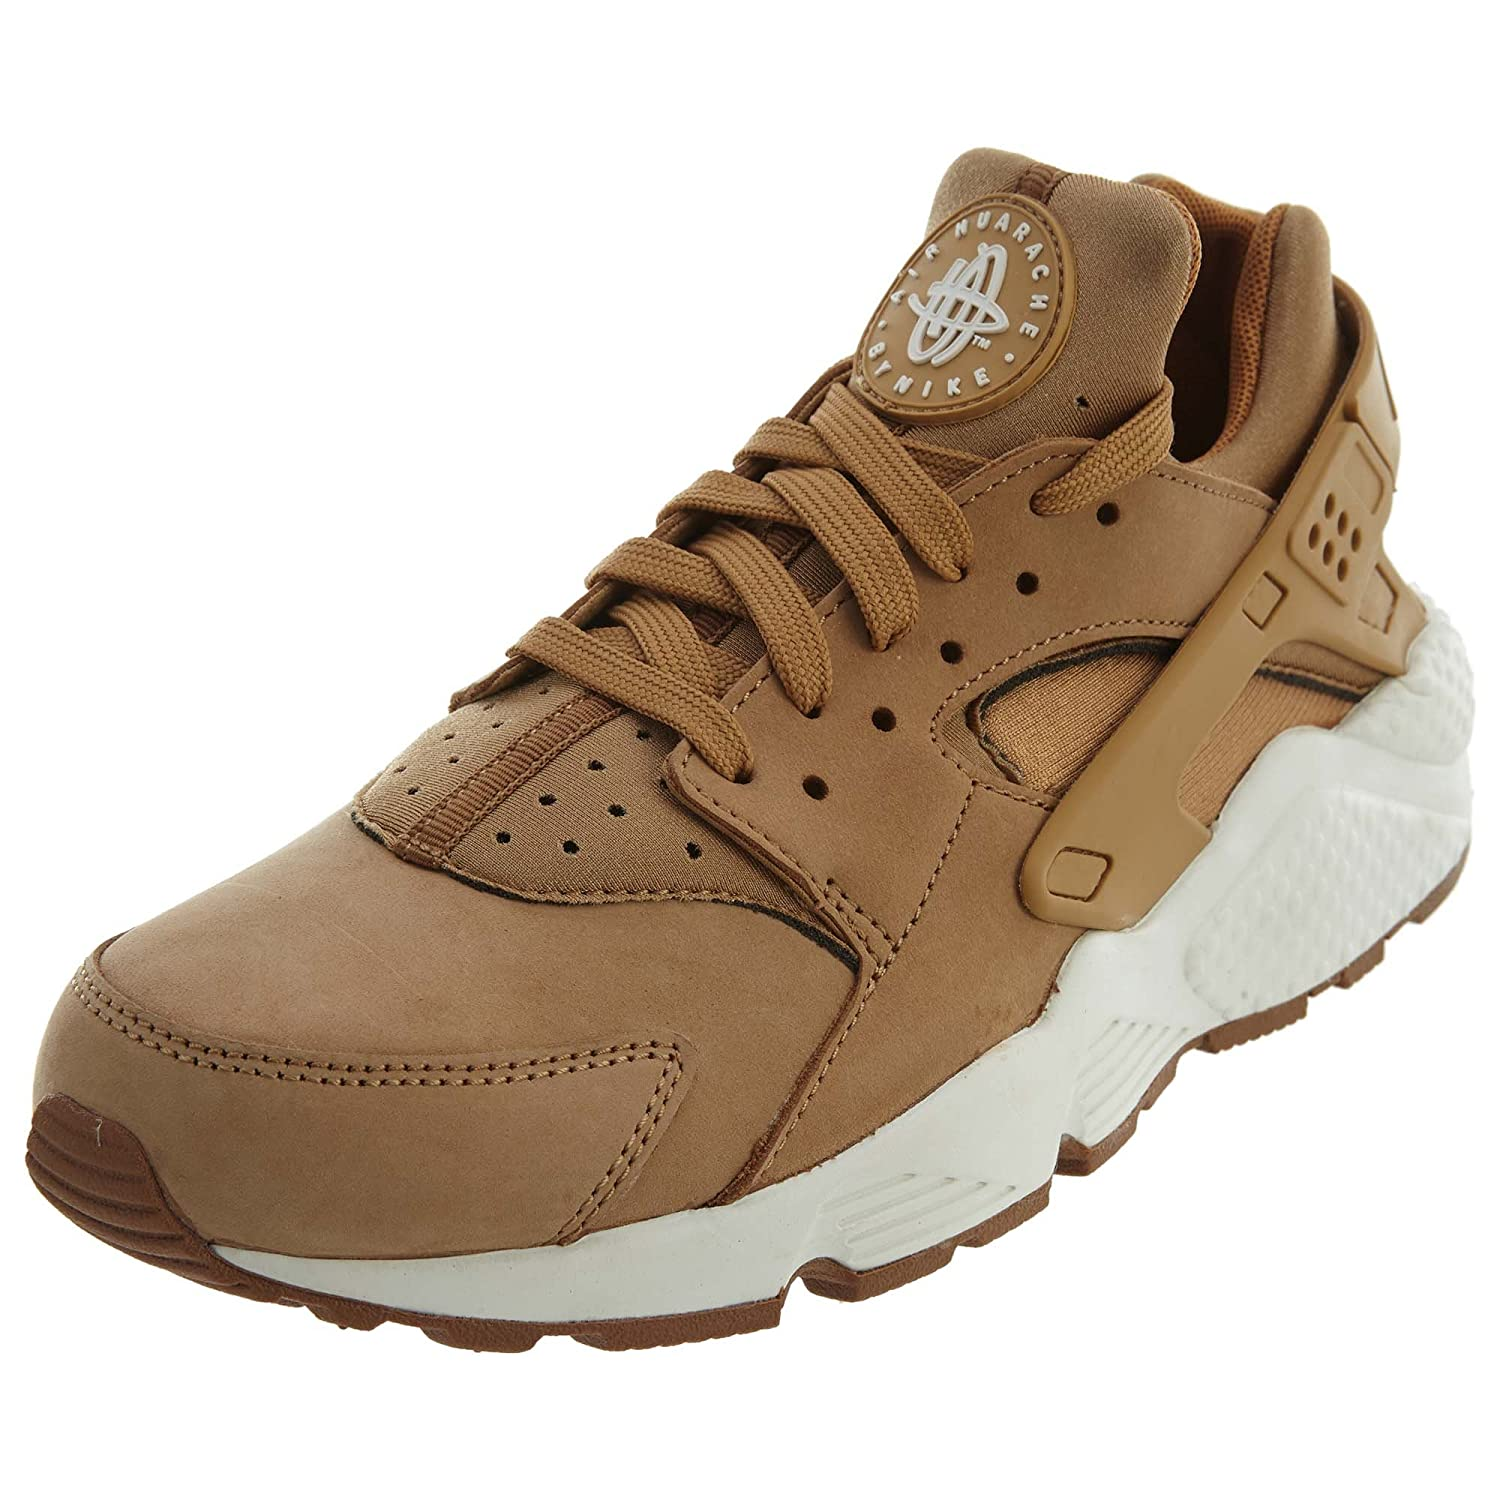 40d5c507f2a1 Nike Air Huarache Men s Trainers  Nike  Amazon.co.uk  Shoes   Bags